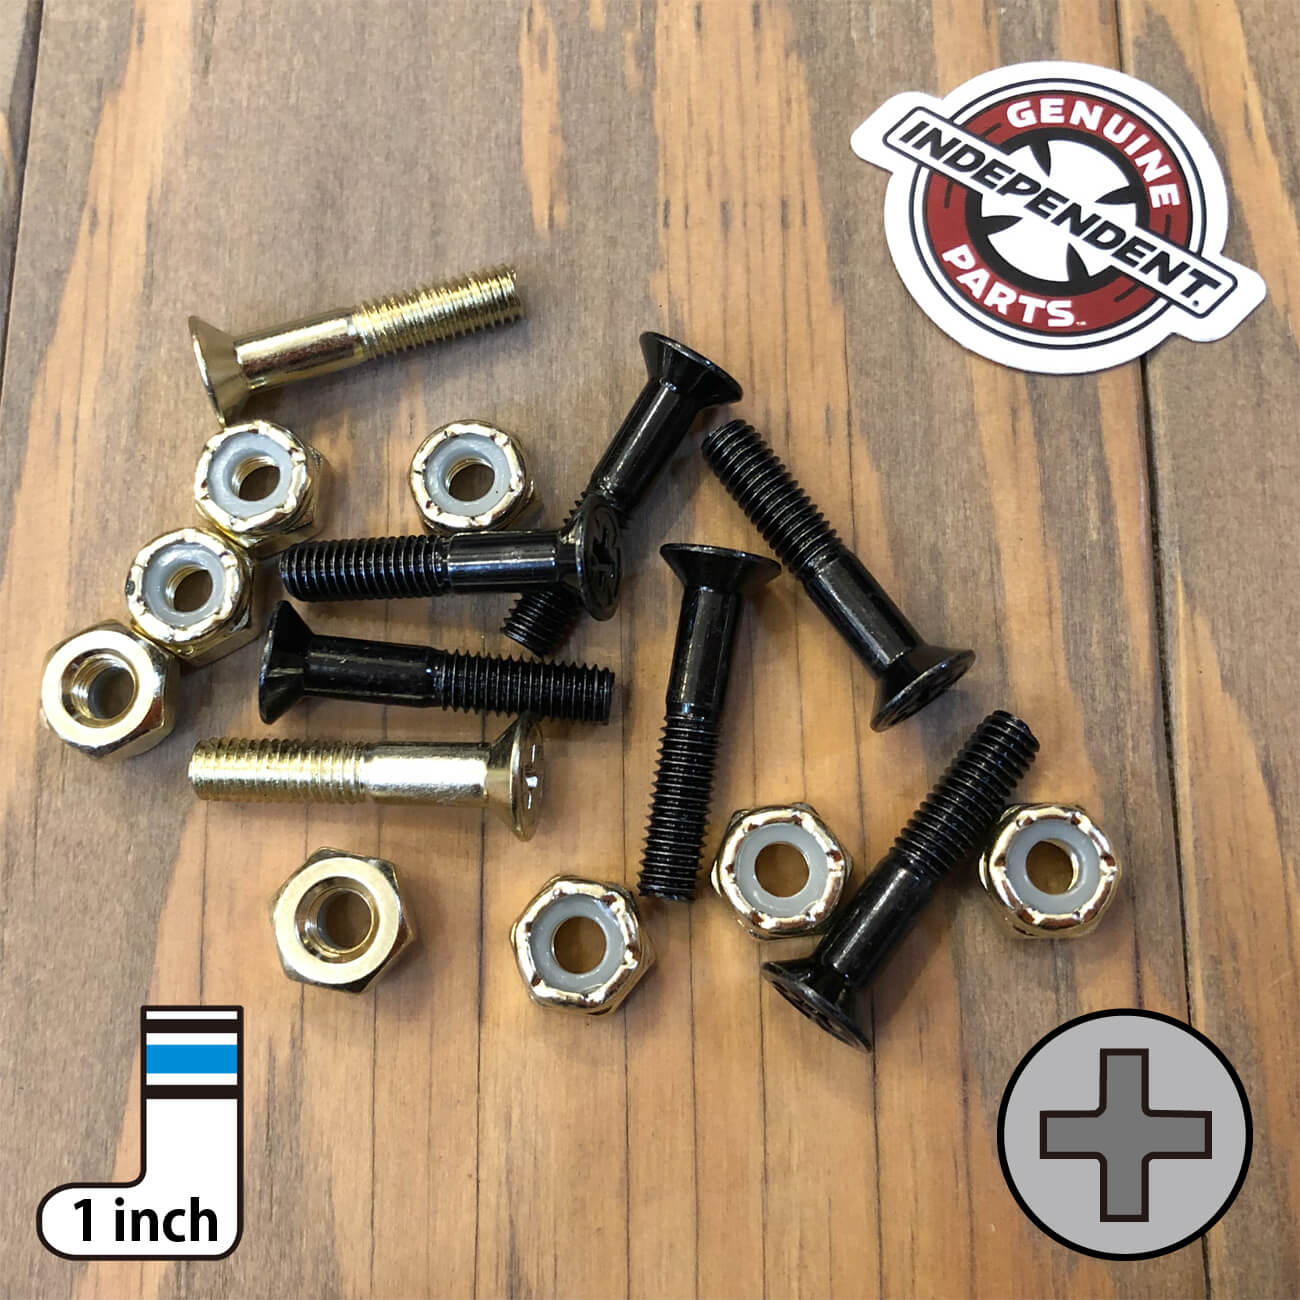 INDEPENDENT CROSS BOLTS 1inch GOLD PHILLIPS(プラス)